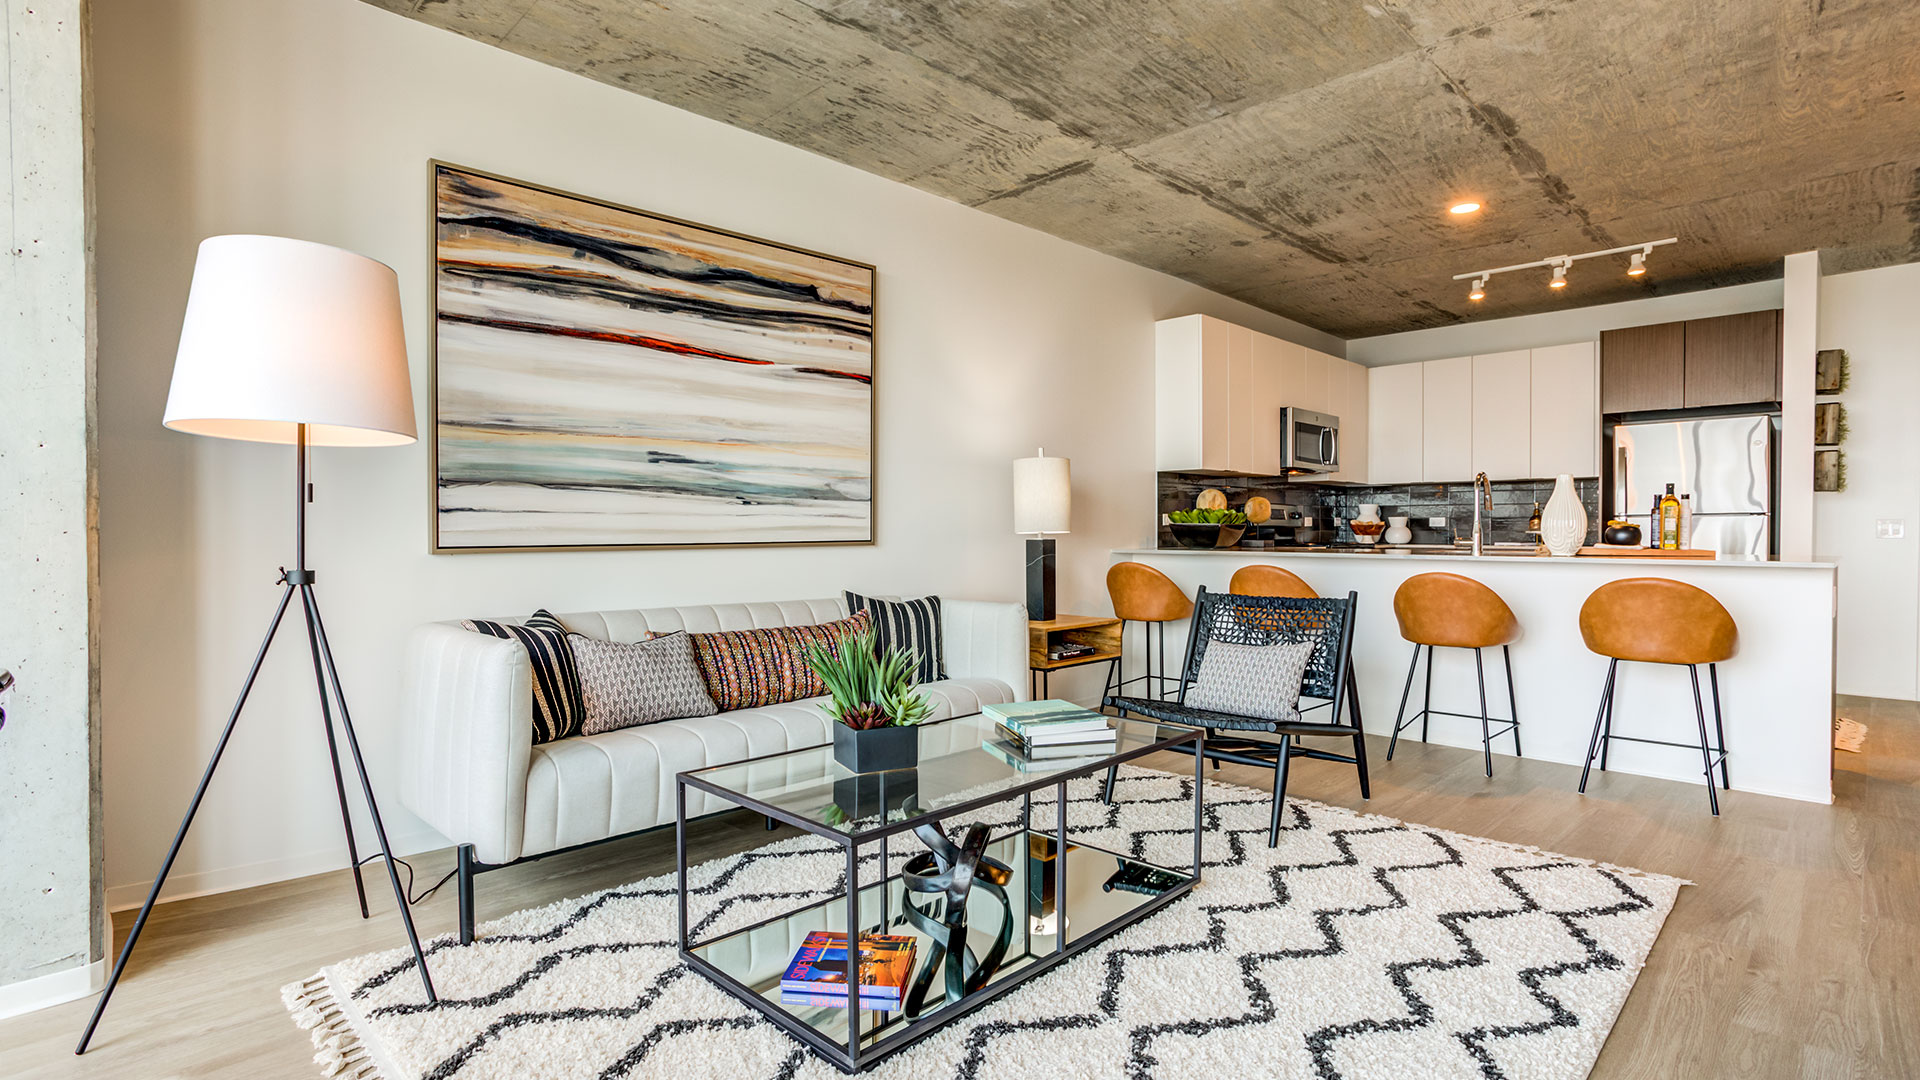 Aspire Residences South Loop luxury apartments for rent now leasing!